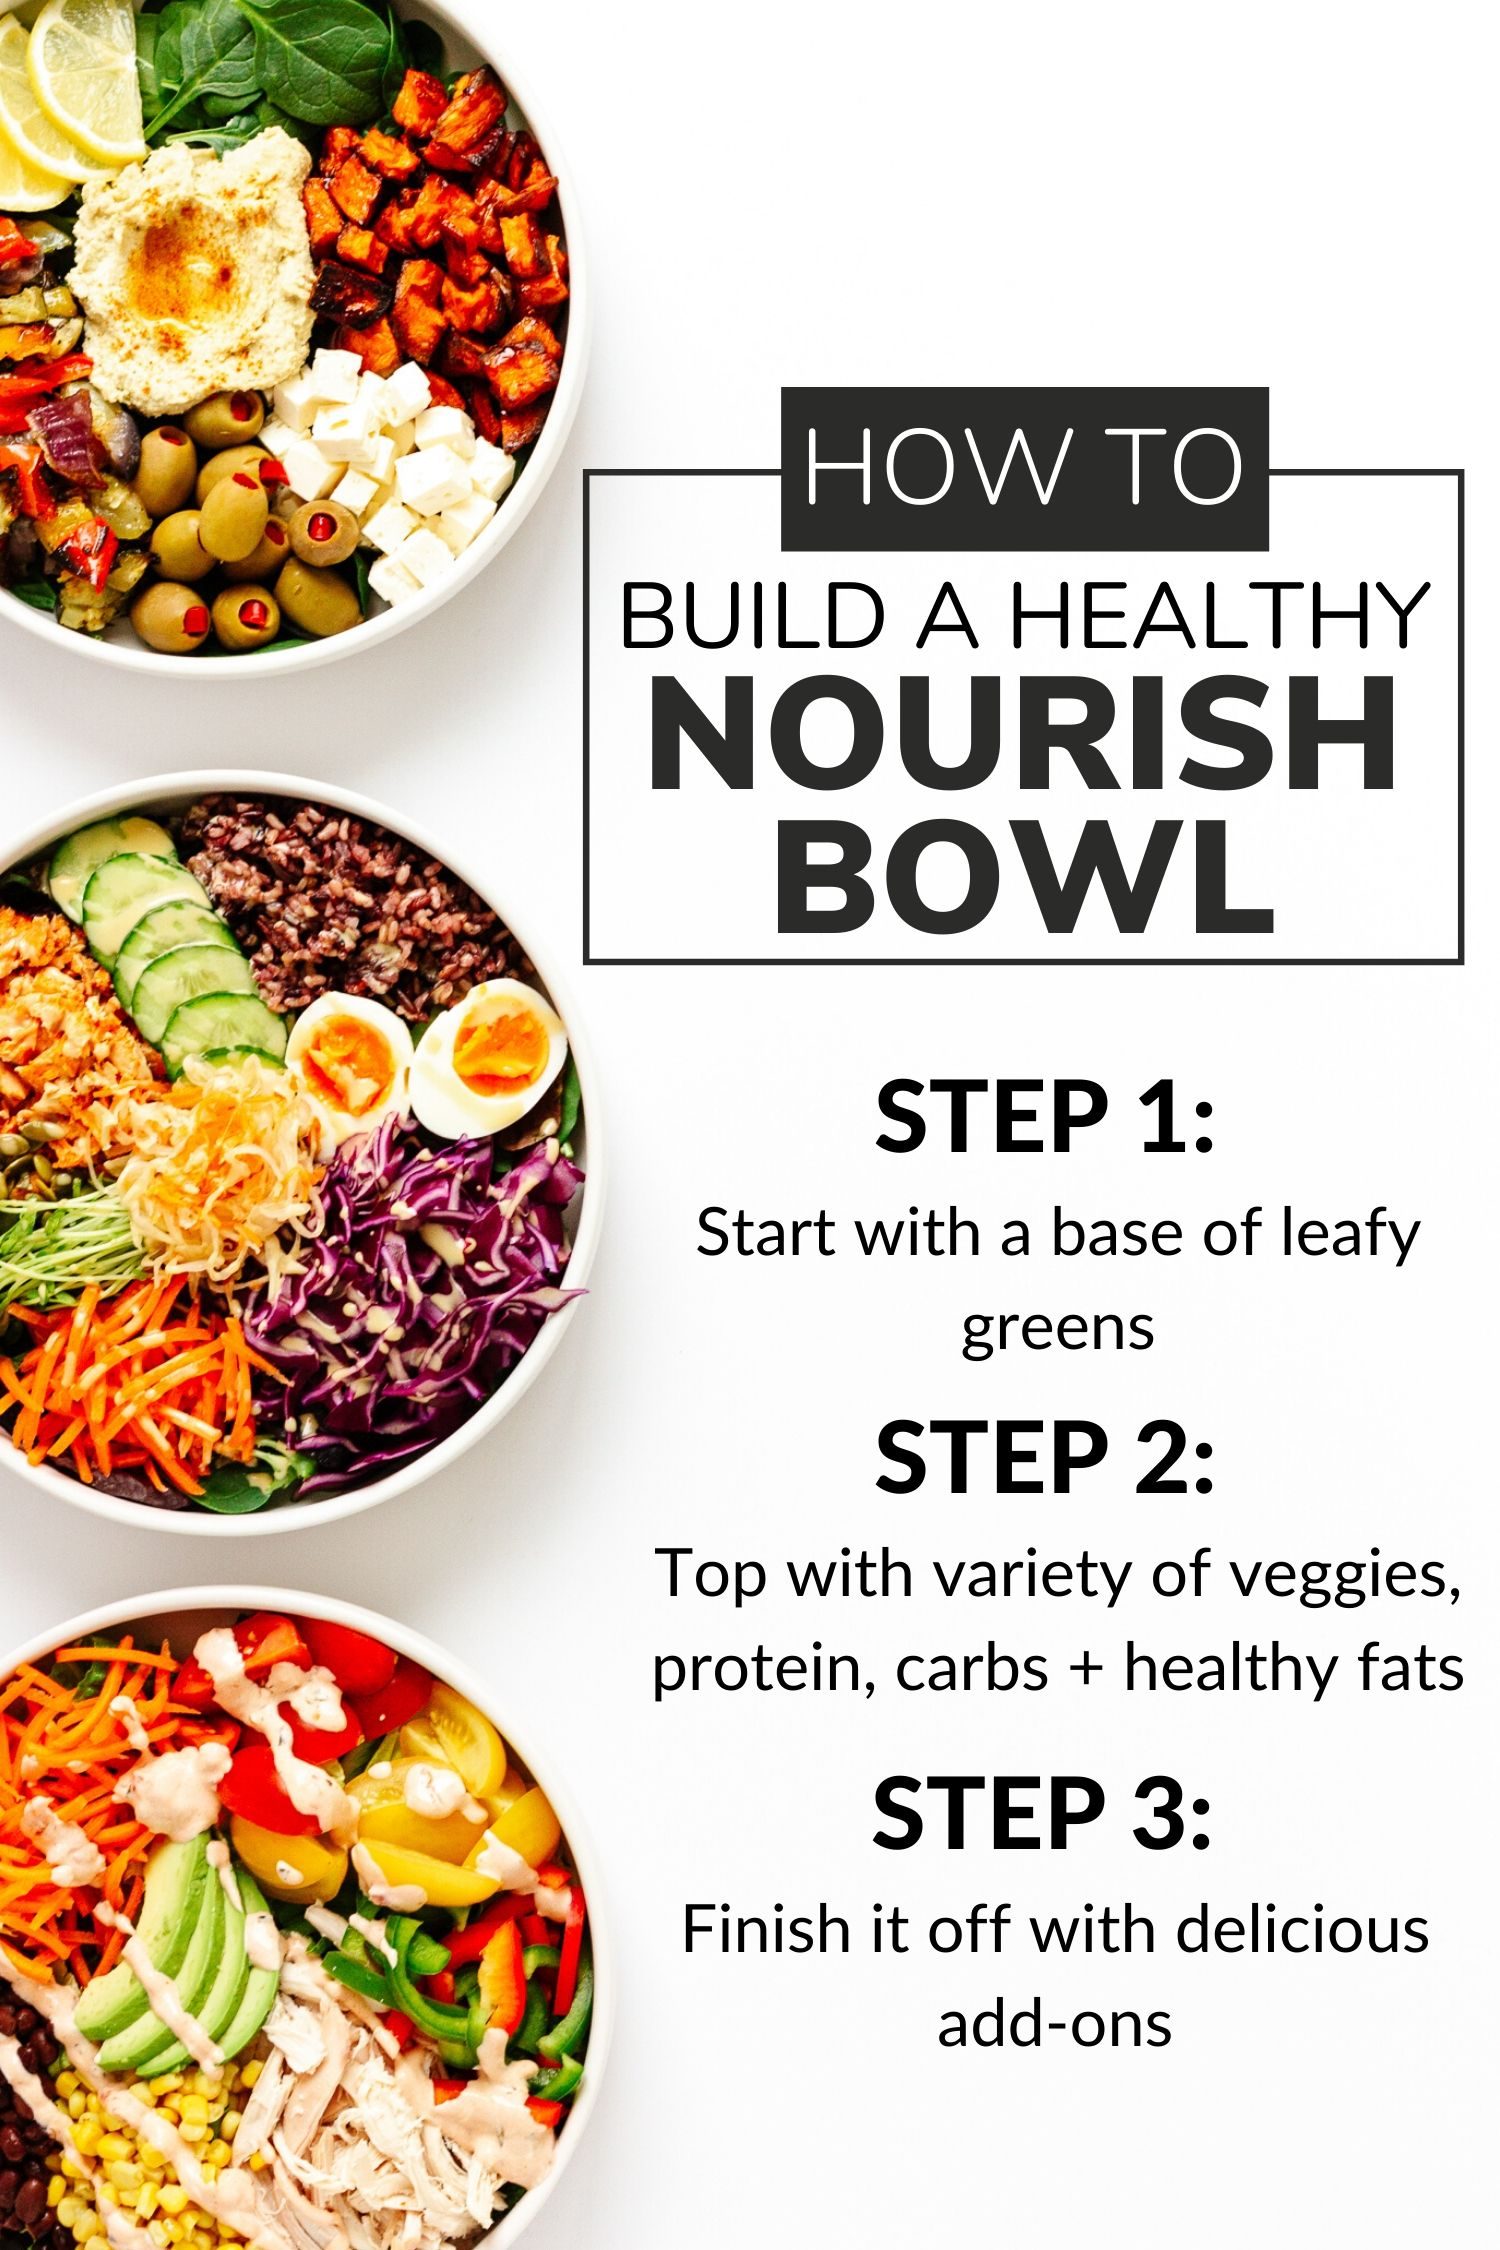 Infographic detailing the three steps to build a healthy nourish bowl.